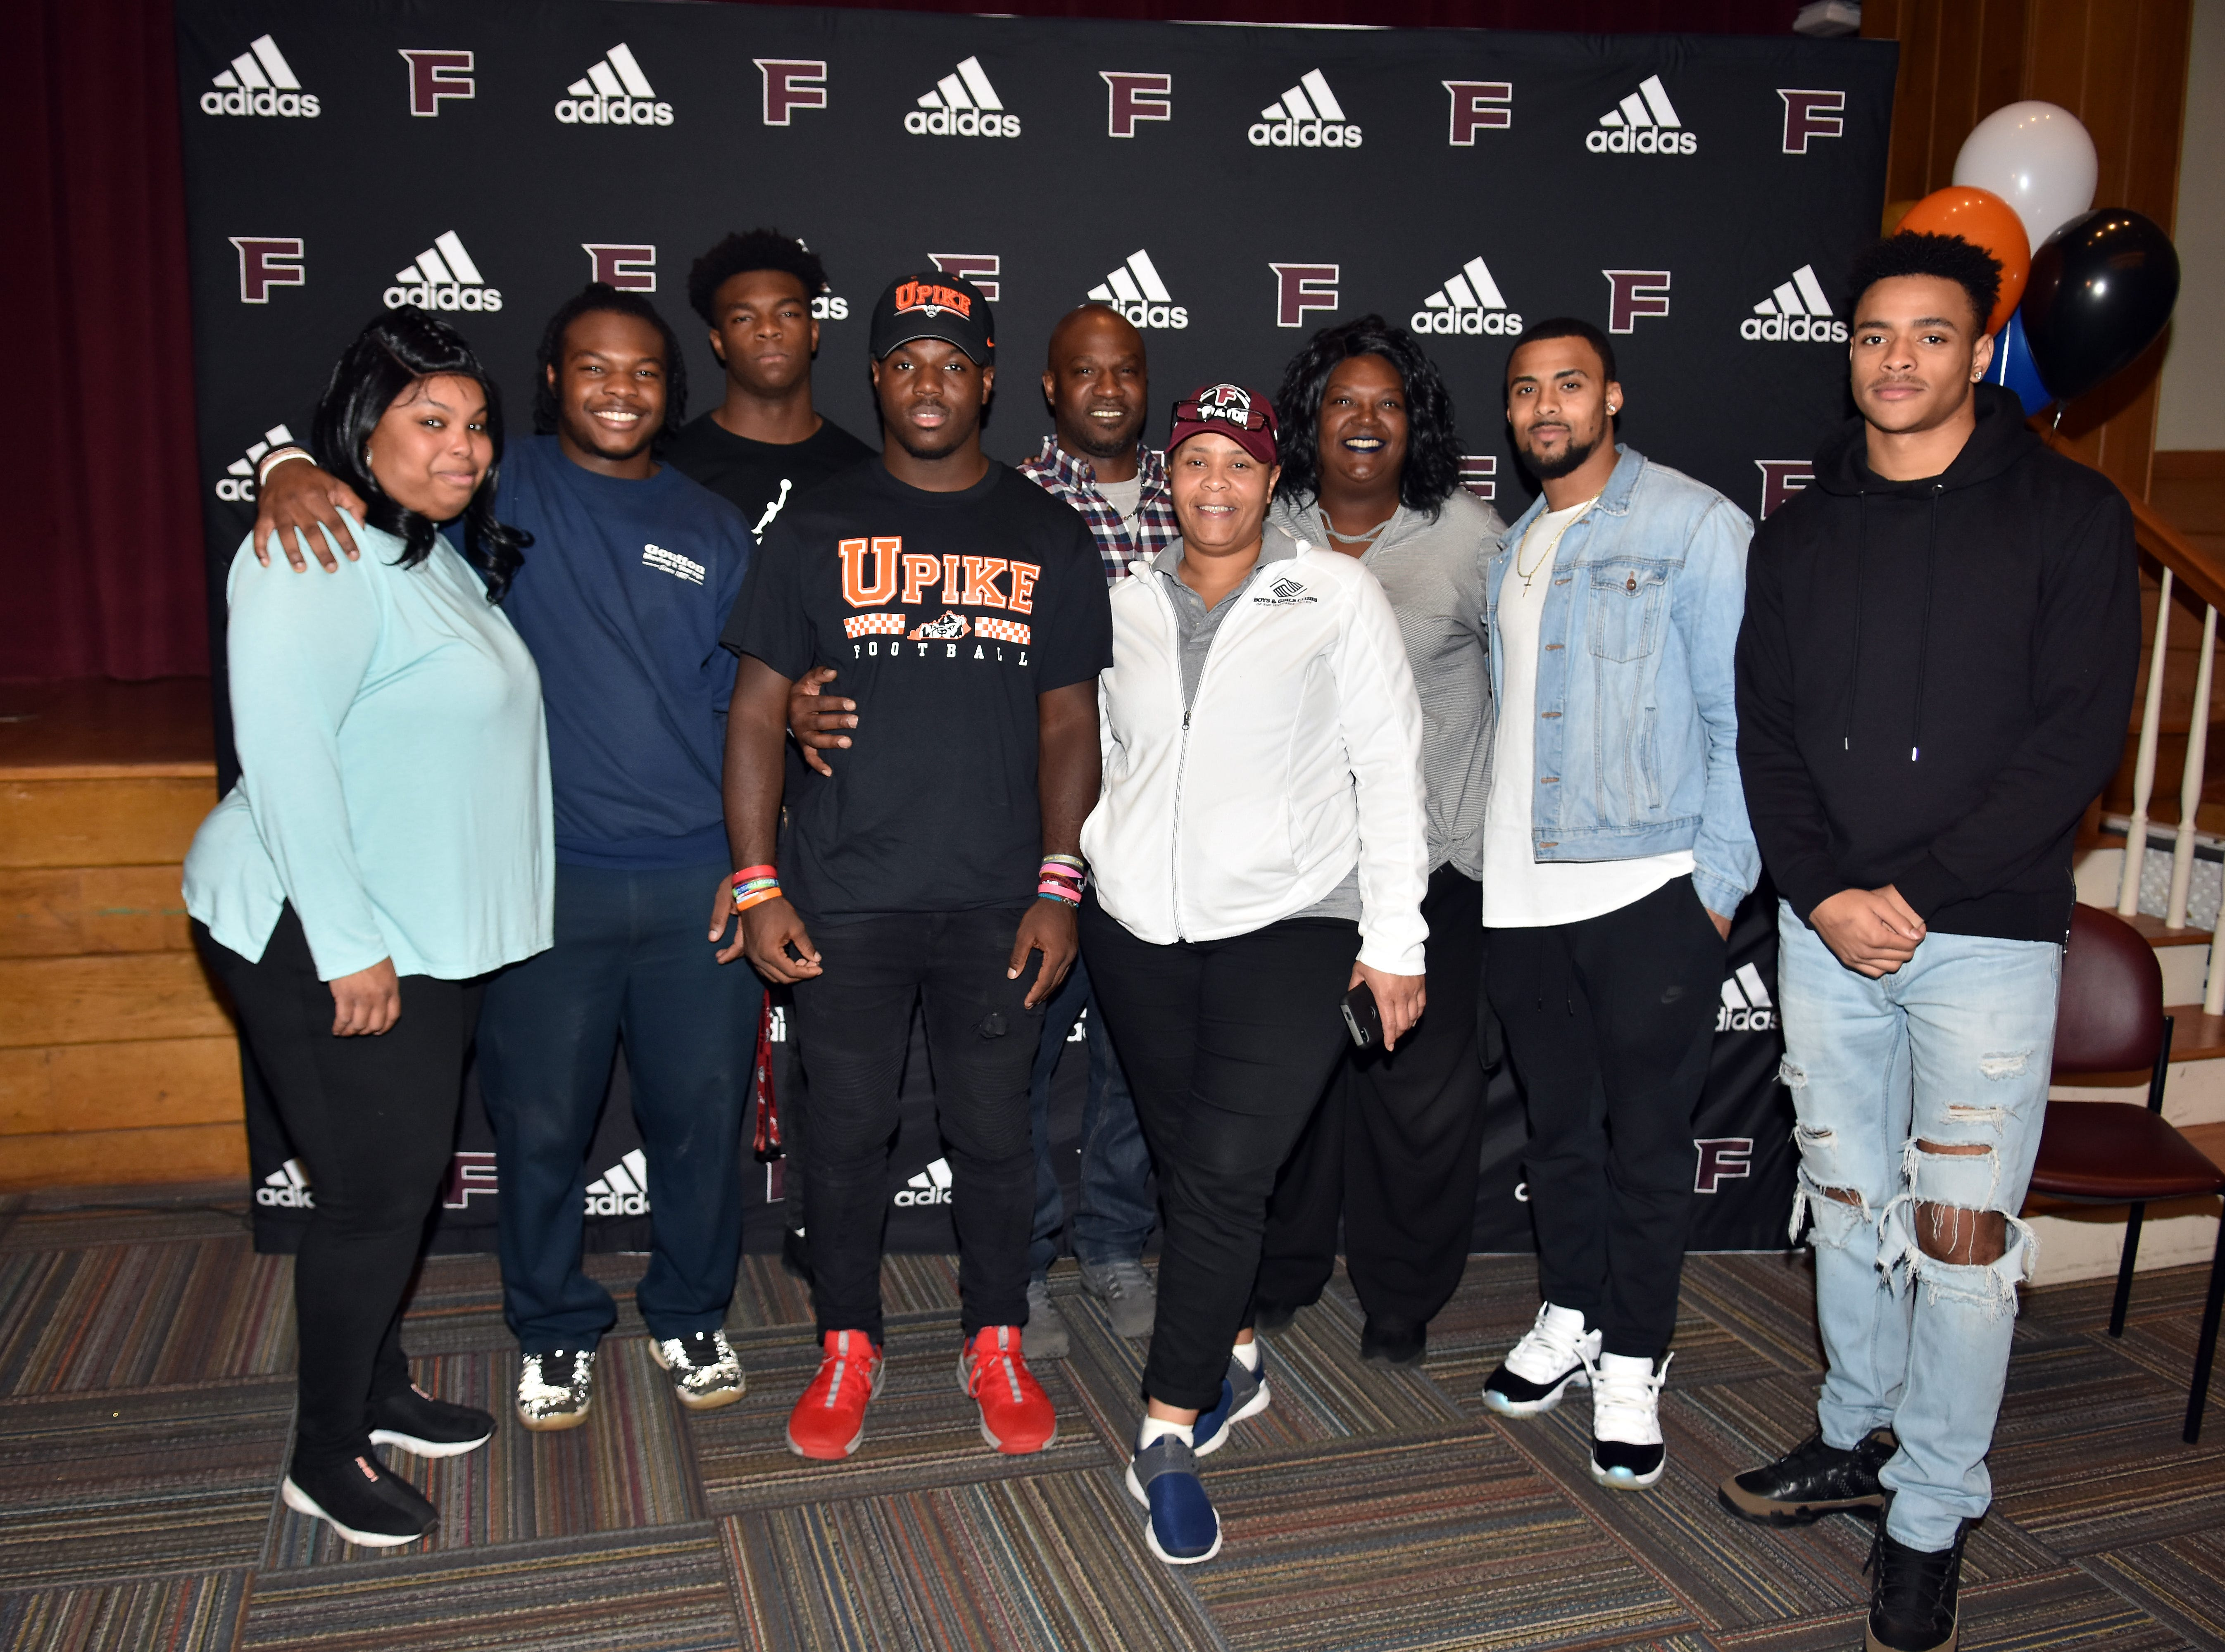 Jashaun Fenderson is surrounded by family on National Signing Day, Wednesday, February 6, 2019. The Fulton High senior signed to play football at University of Pikeville.